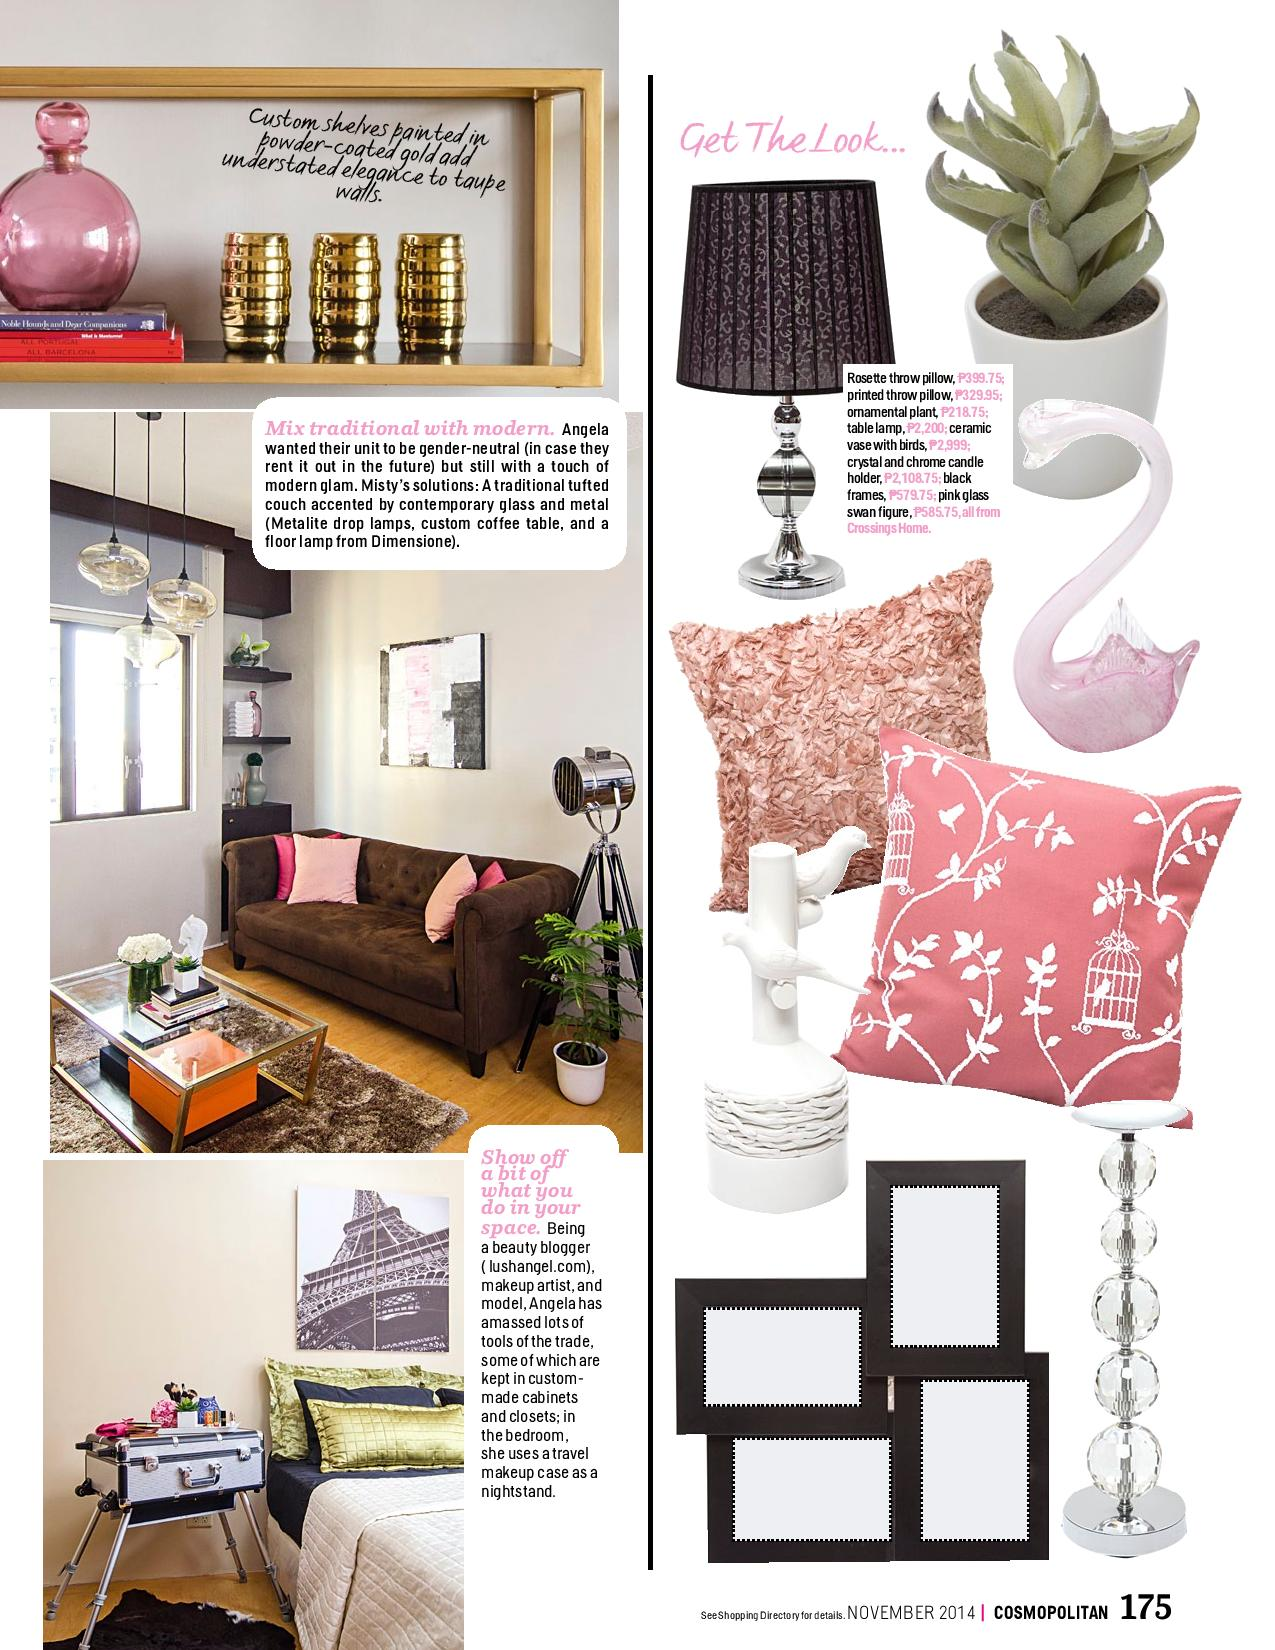 cosmopolitan-philippines-at-your-place-november